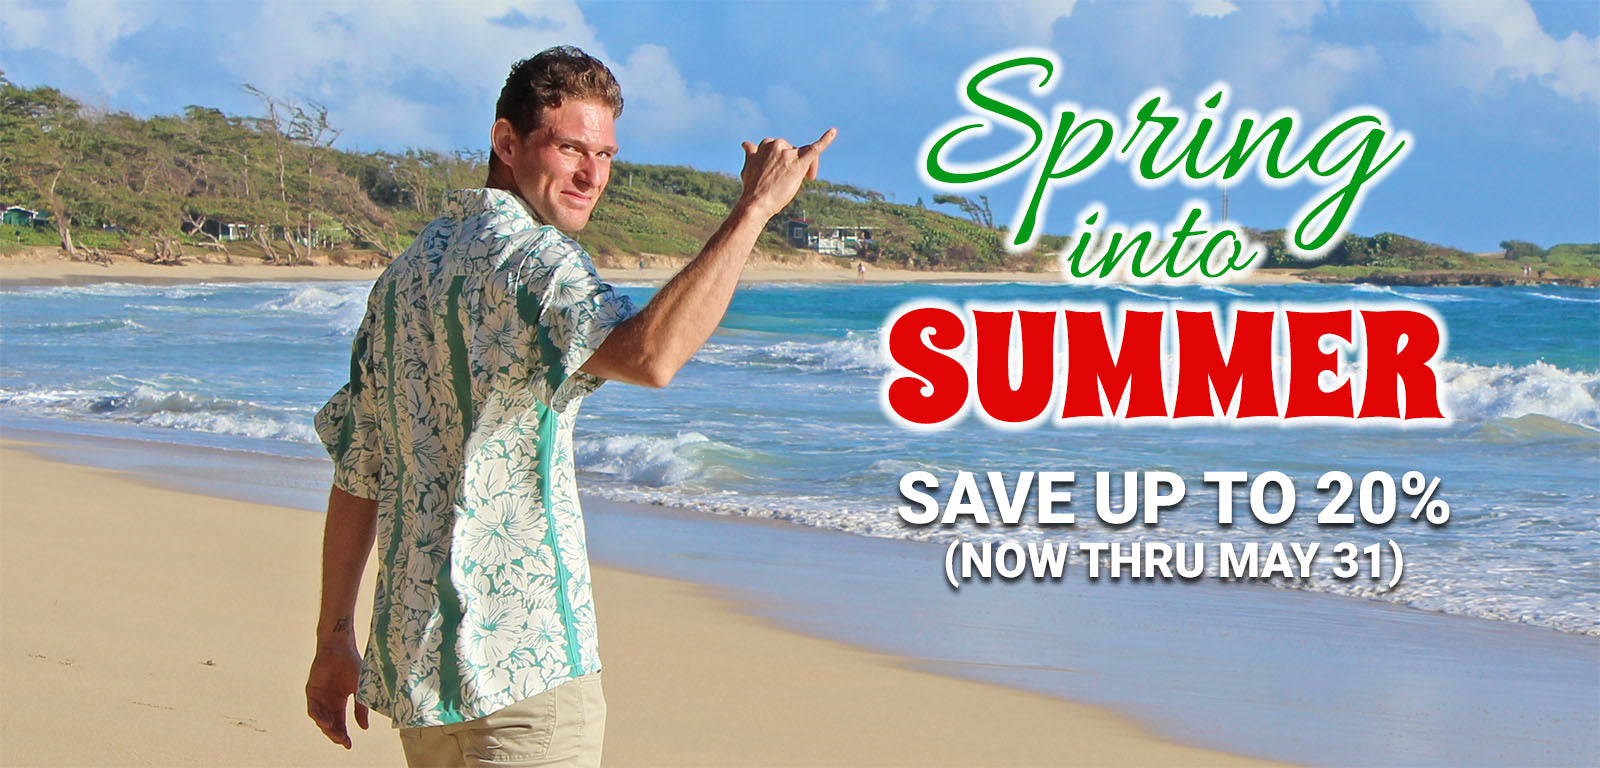 Hawaiian Shirts Spring into Summer Sale